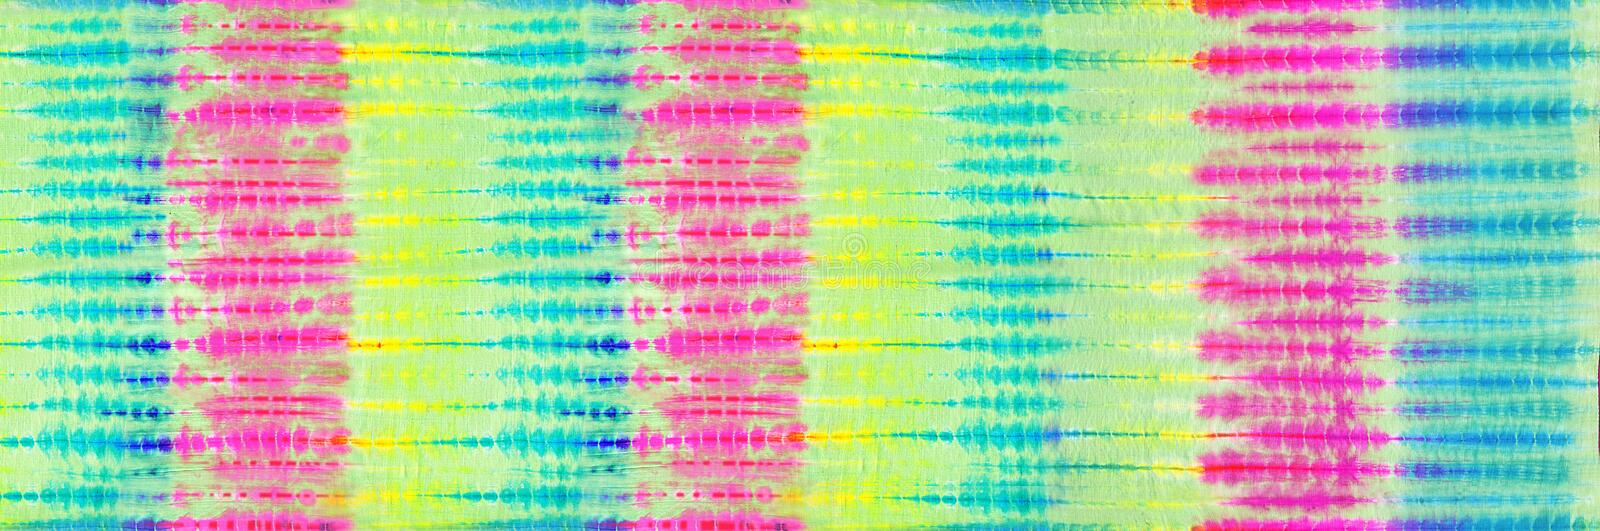 Tie dye background colorful pattern vector illustration